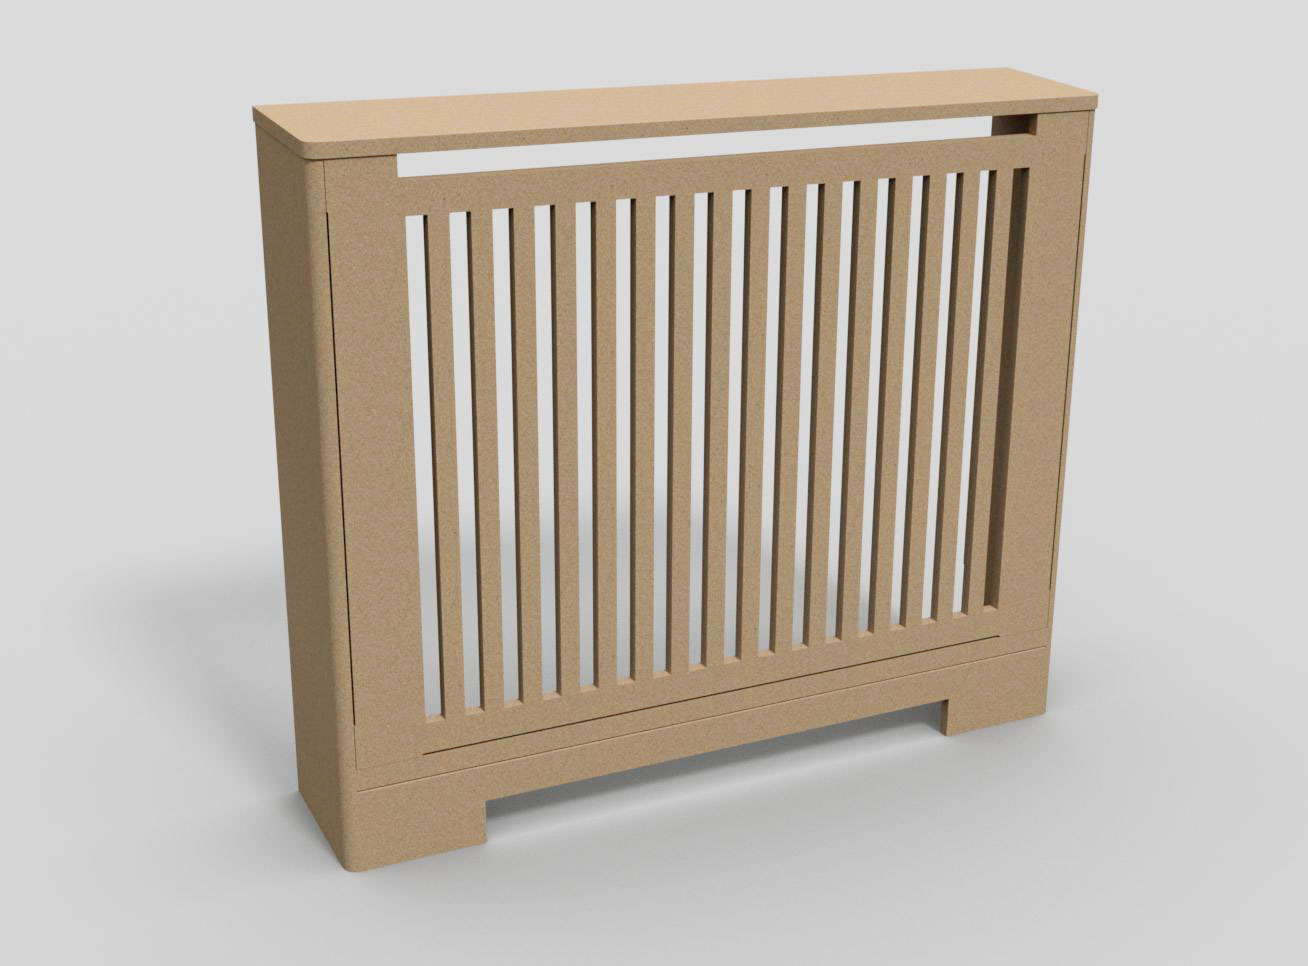 Dark Wood Radiator Covers Mdf Great Mdf Board Nz With Mdf Amazing Mdf Mouldings